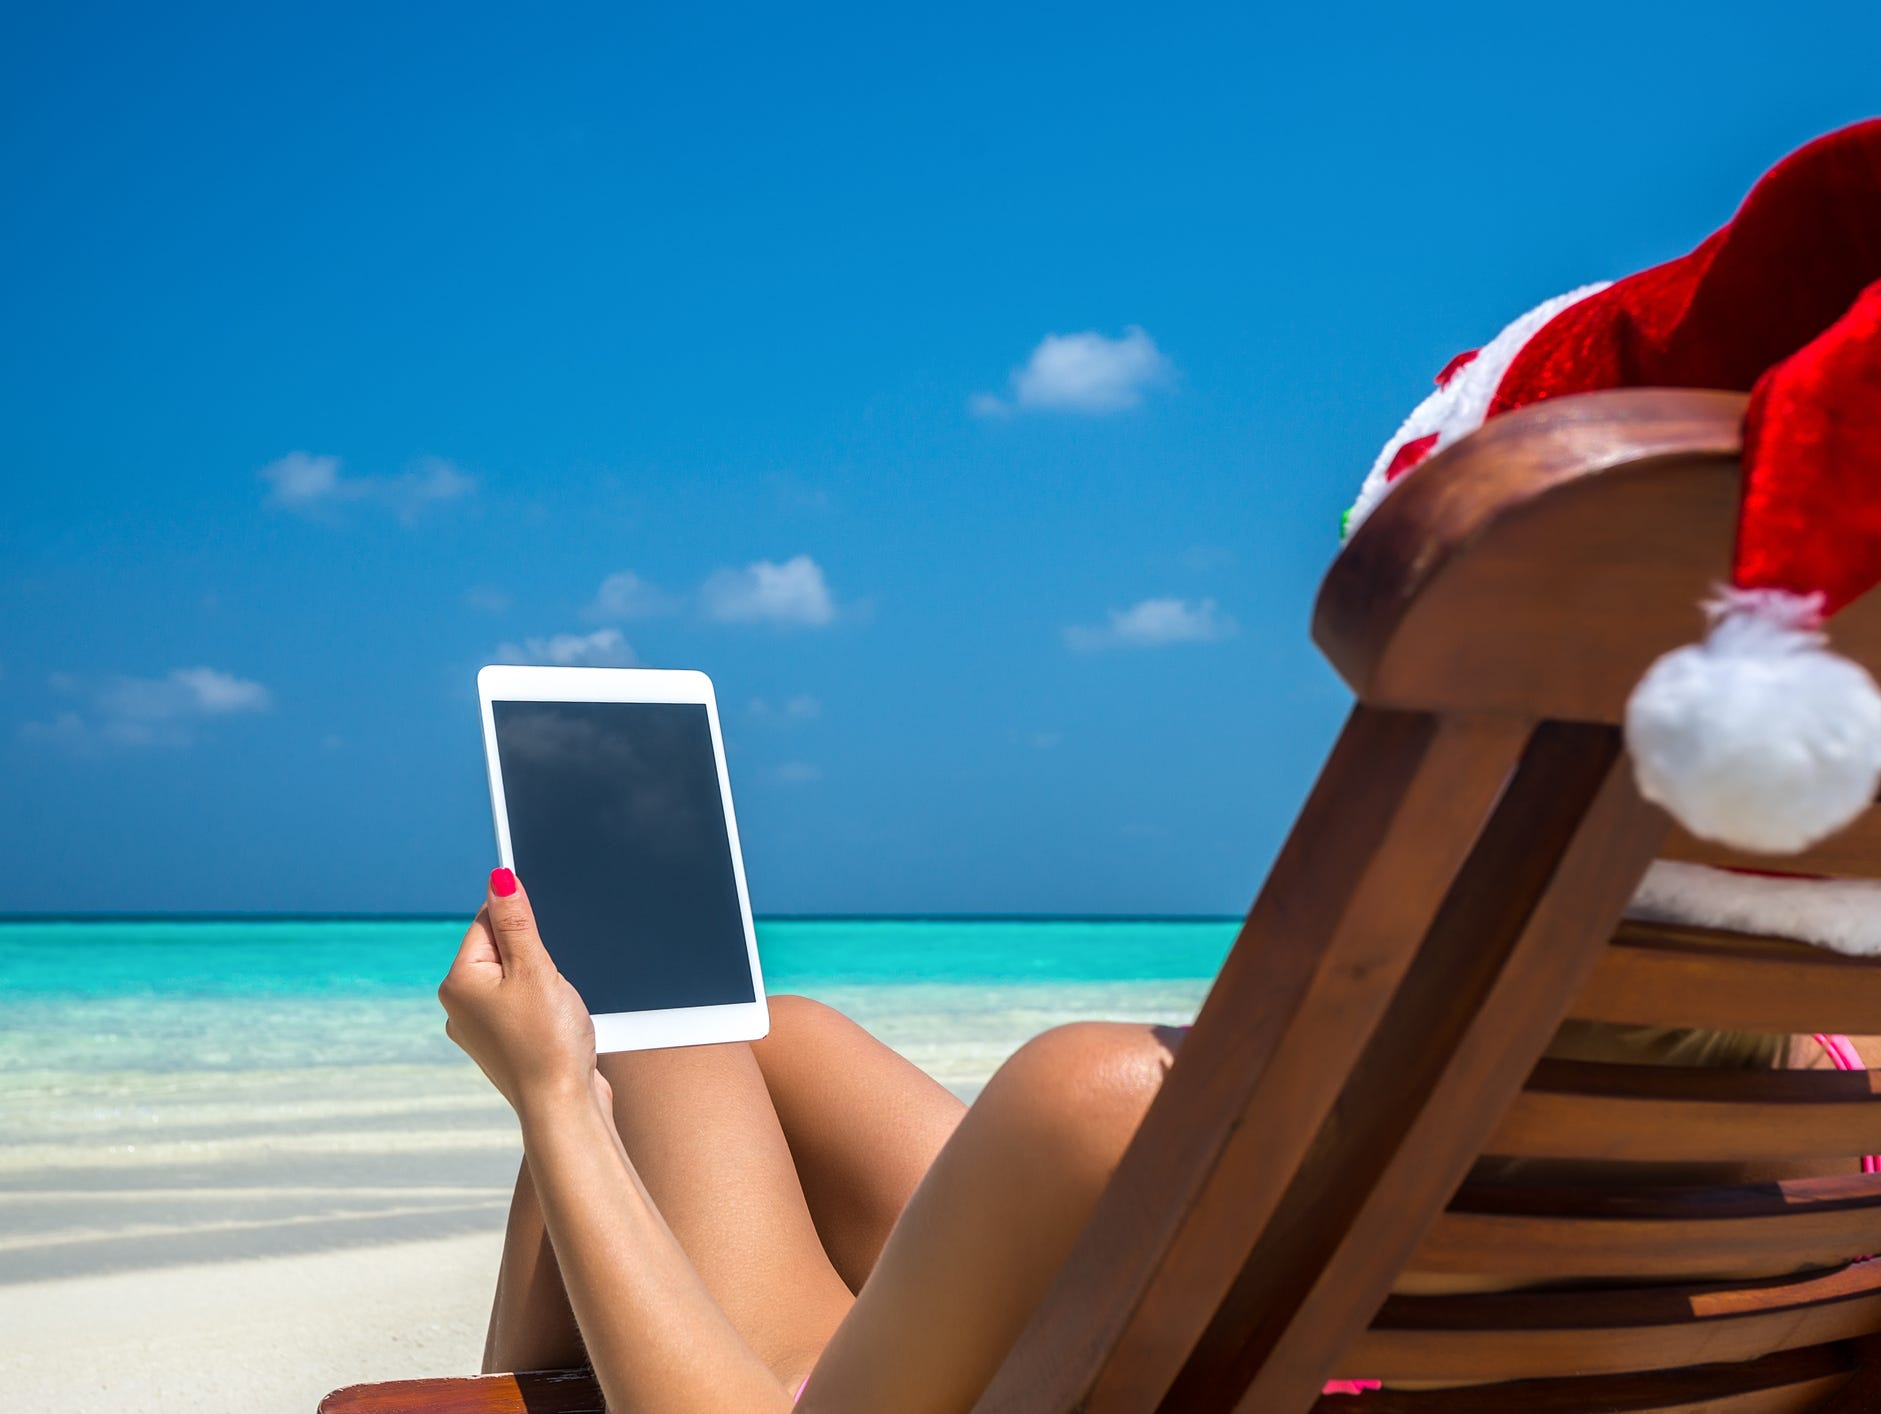 Santa's giving one Insider a new tablet this Christmas (in July). Enter to win before July 31st!